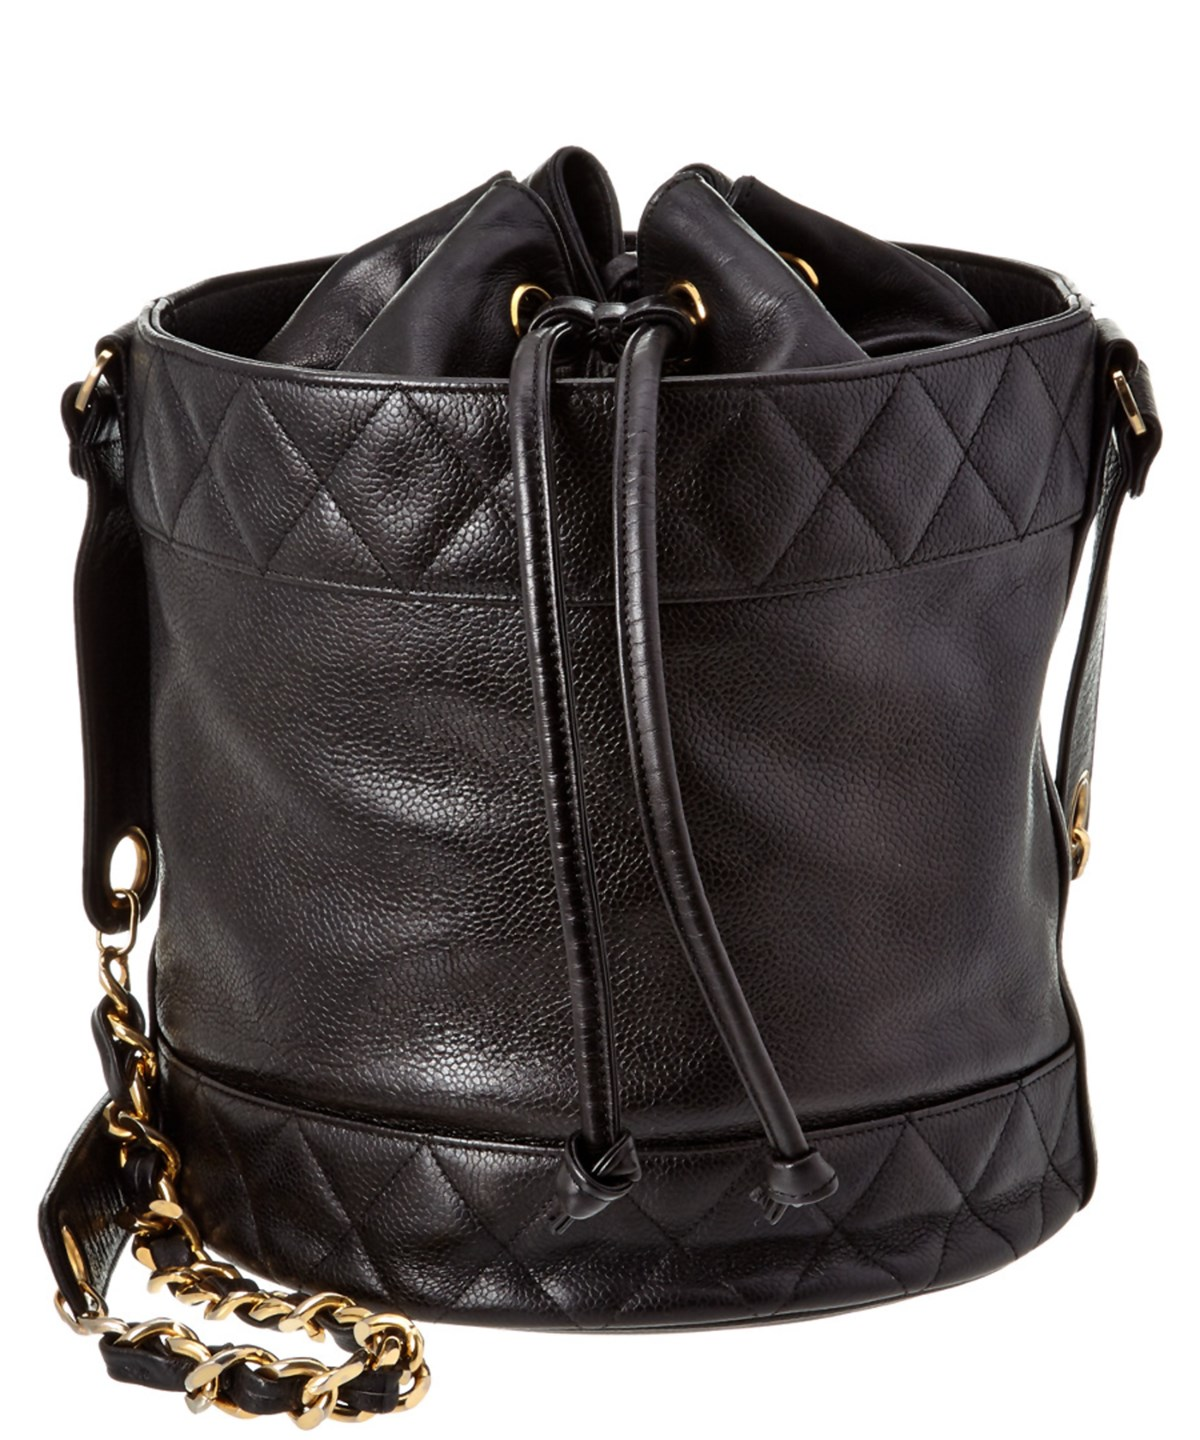 CHANEL. Chanel Black Quilted Caviar Leather Border Bucket Bag 930dc23ff1bae